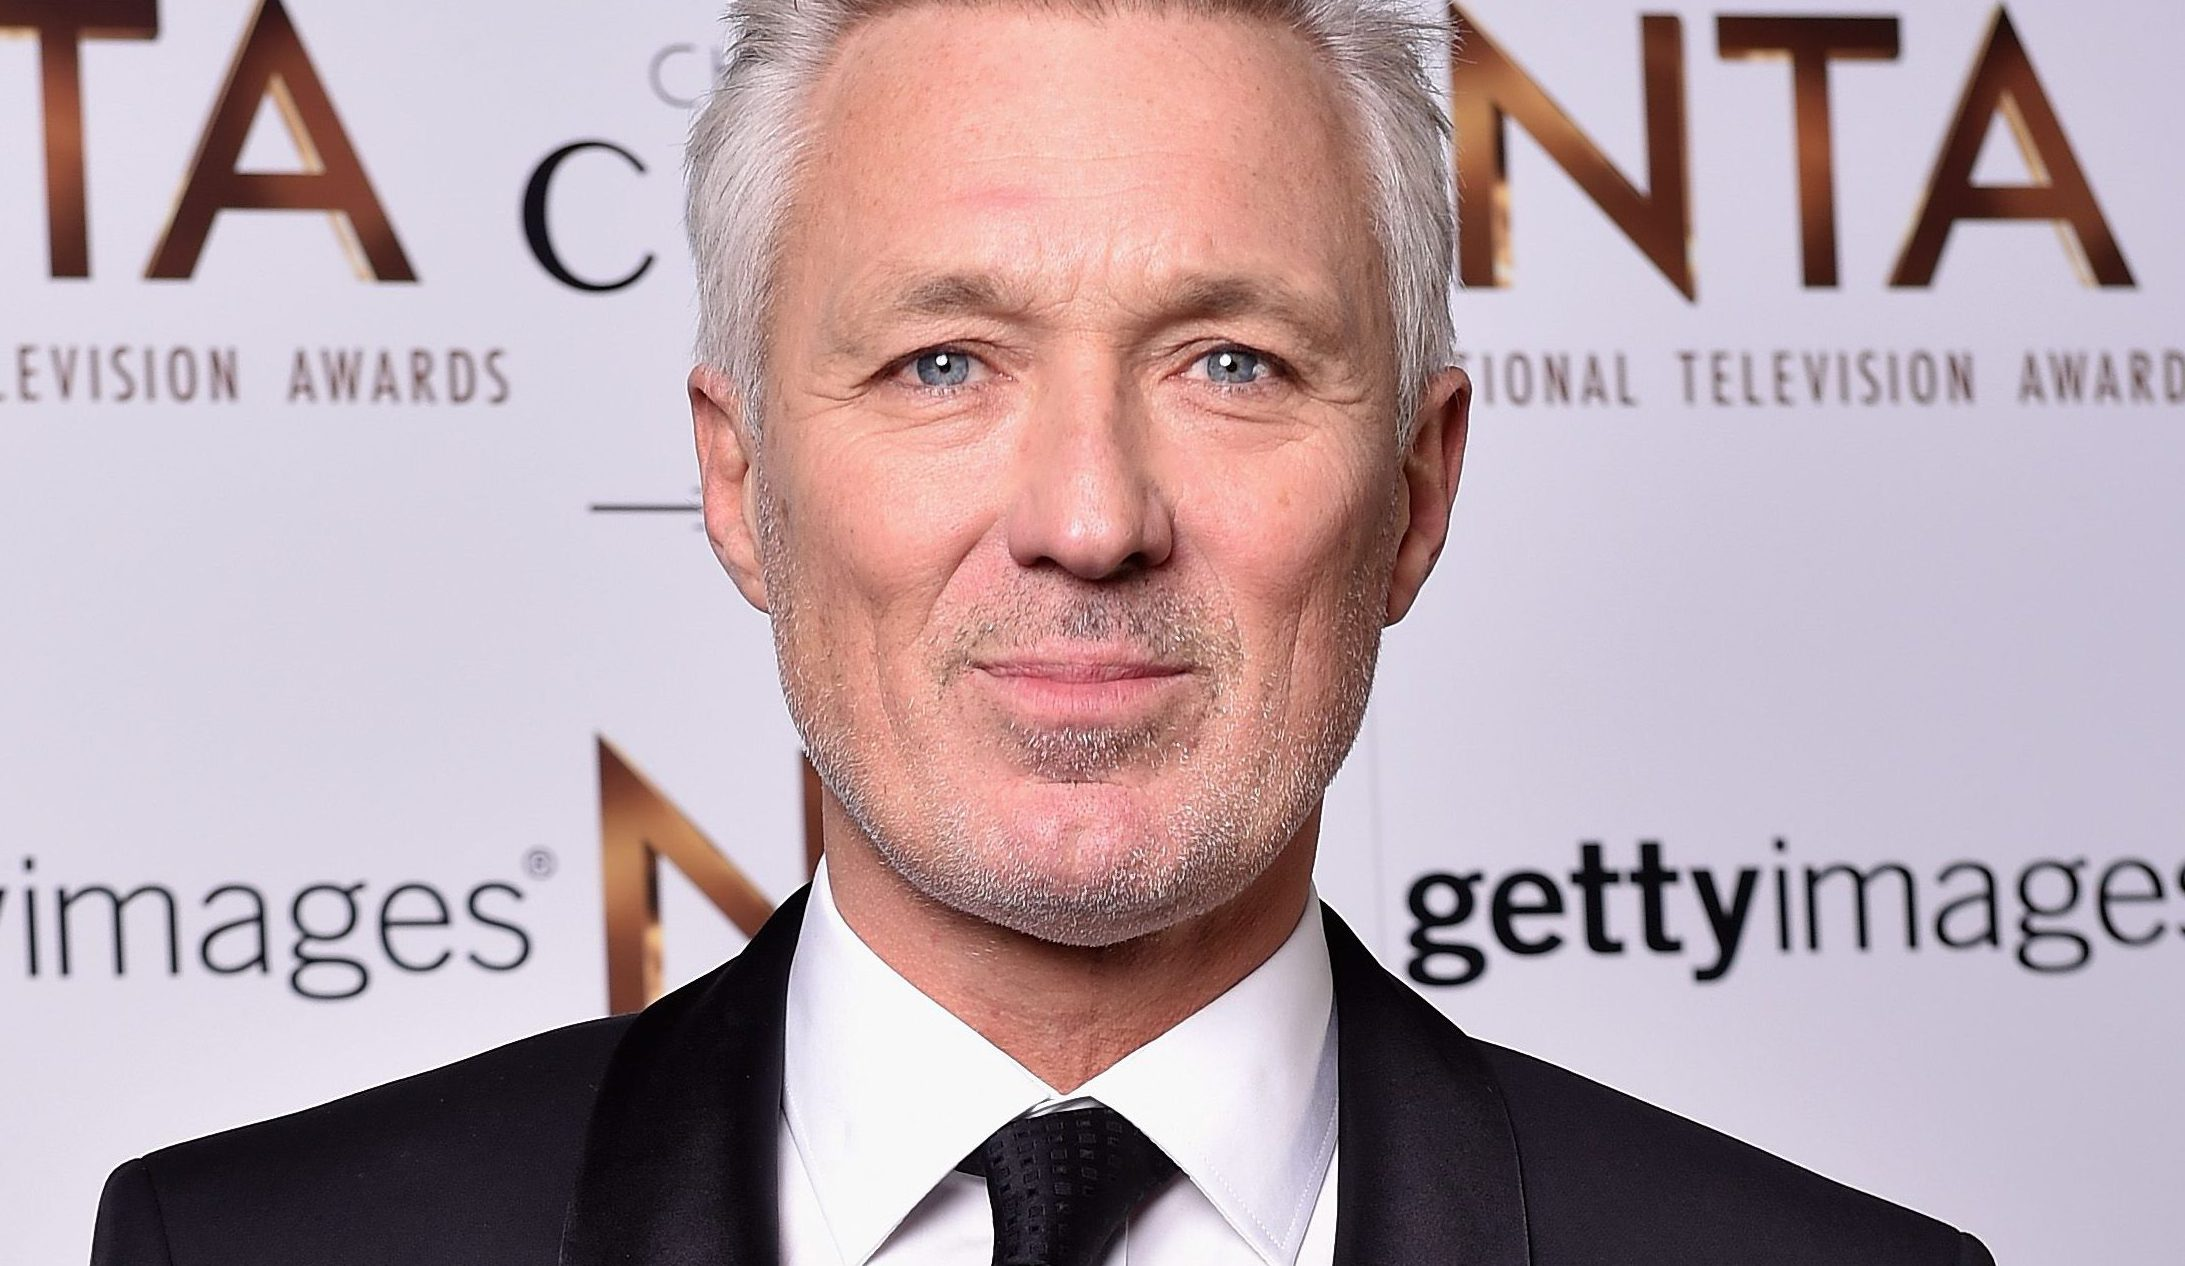 LONDON, ENGLAND - JANUARY 20: Martin Kemp attends the 21st National Television Awards at The O2 Arena on January 20, 2016 in London, England. (Photo by Gareth Cattermole/Getty Images)